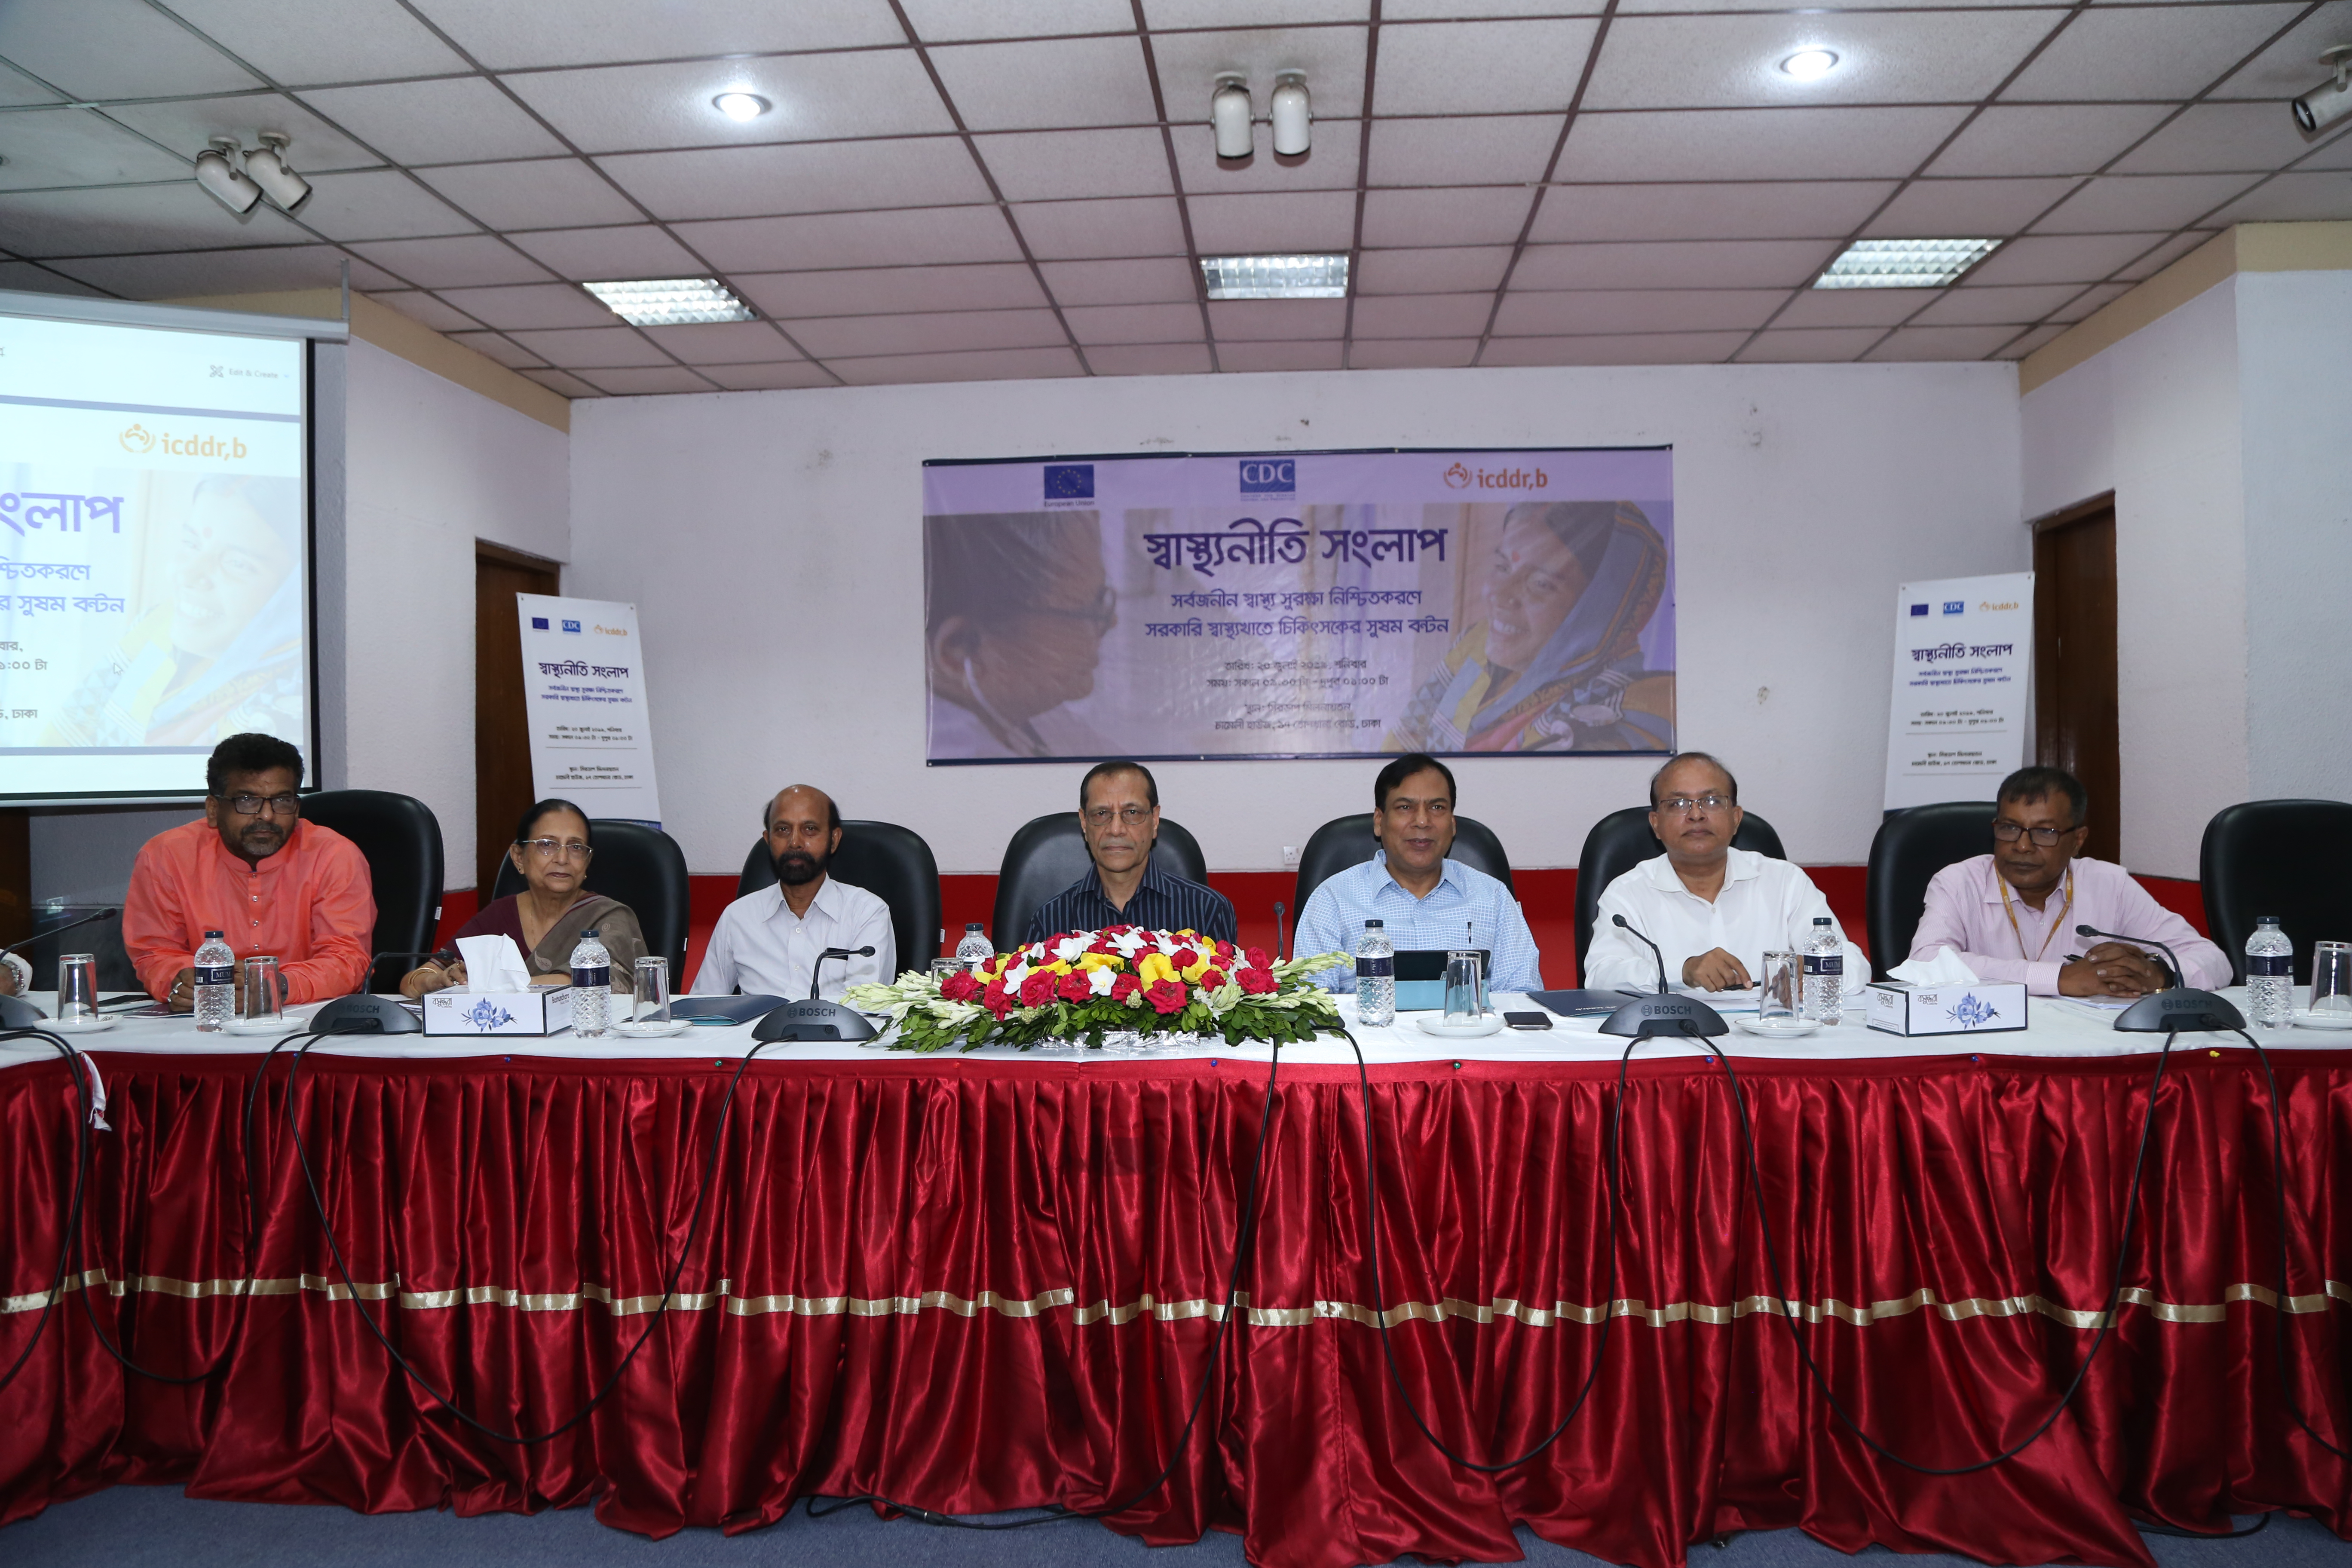 HPD held a discussion on 'Equitable Distribution of Medical Doctors for Strengthening Universal Health Coverage (UHC)'.